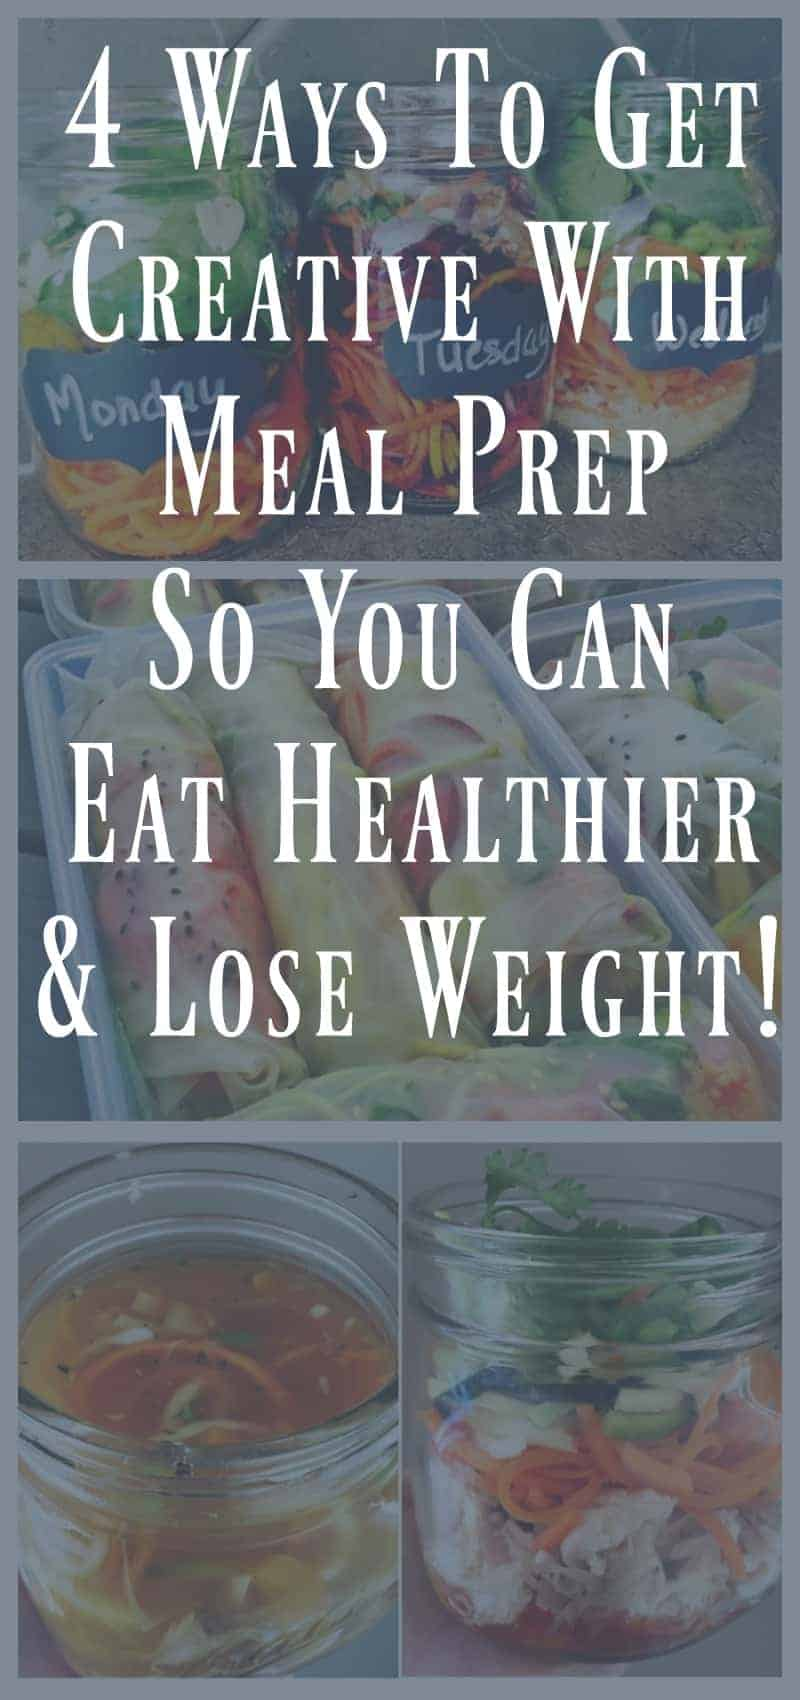 4 Ways to Get Creative With Meal Prep So You Can Eat Healthier and Lose Weight